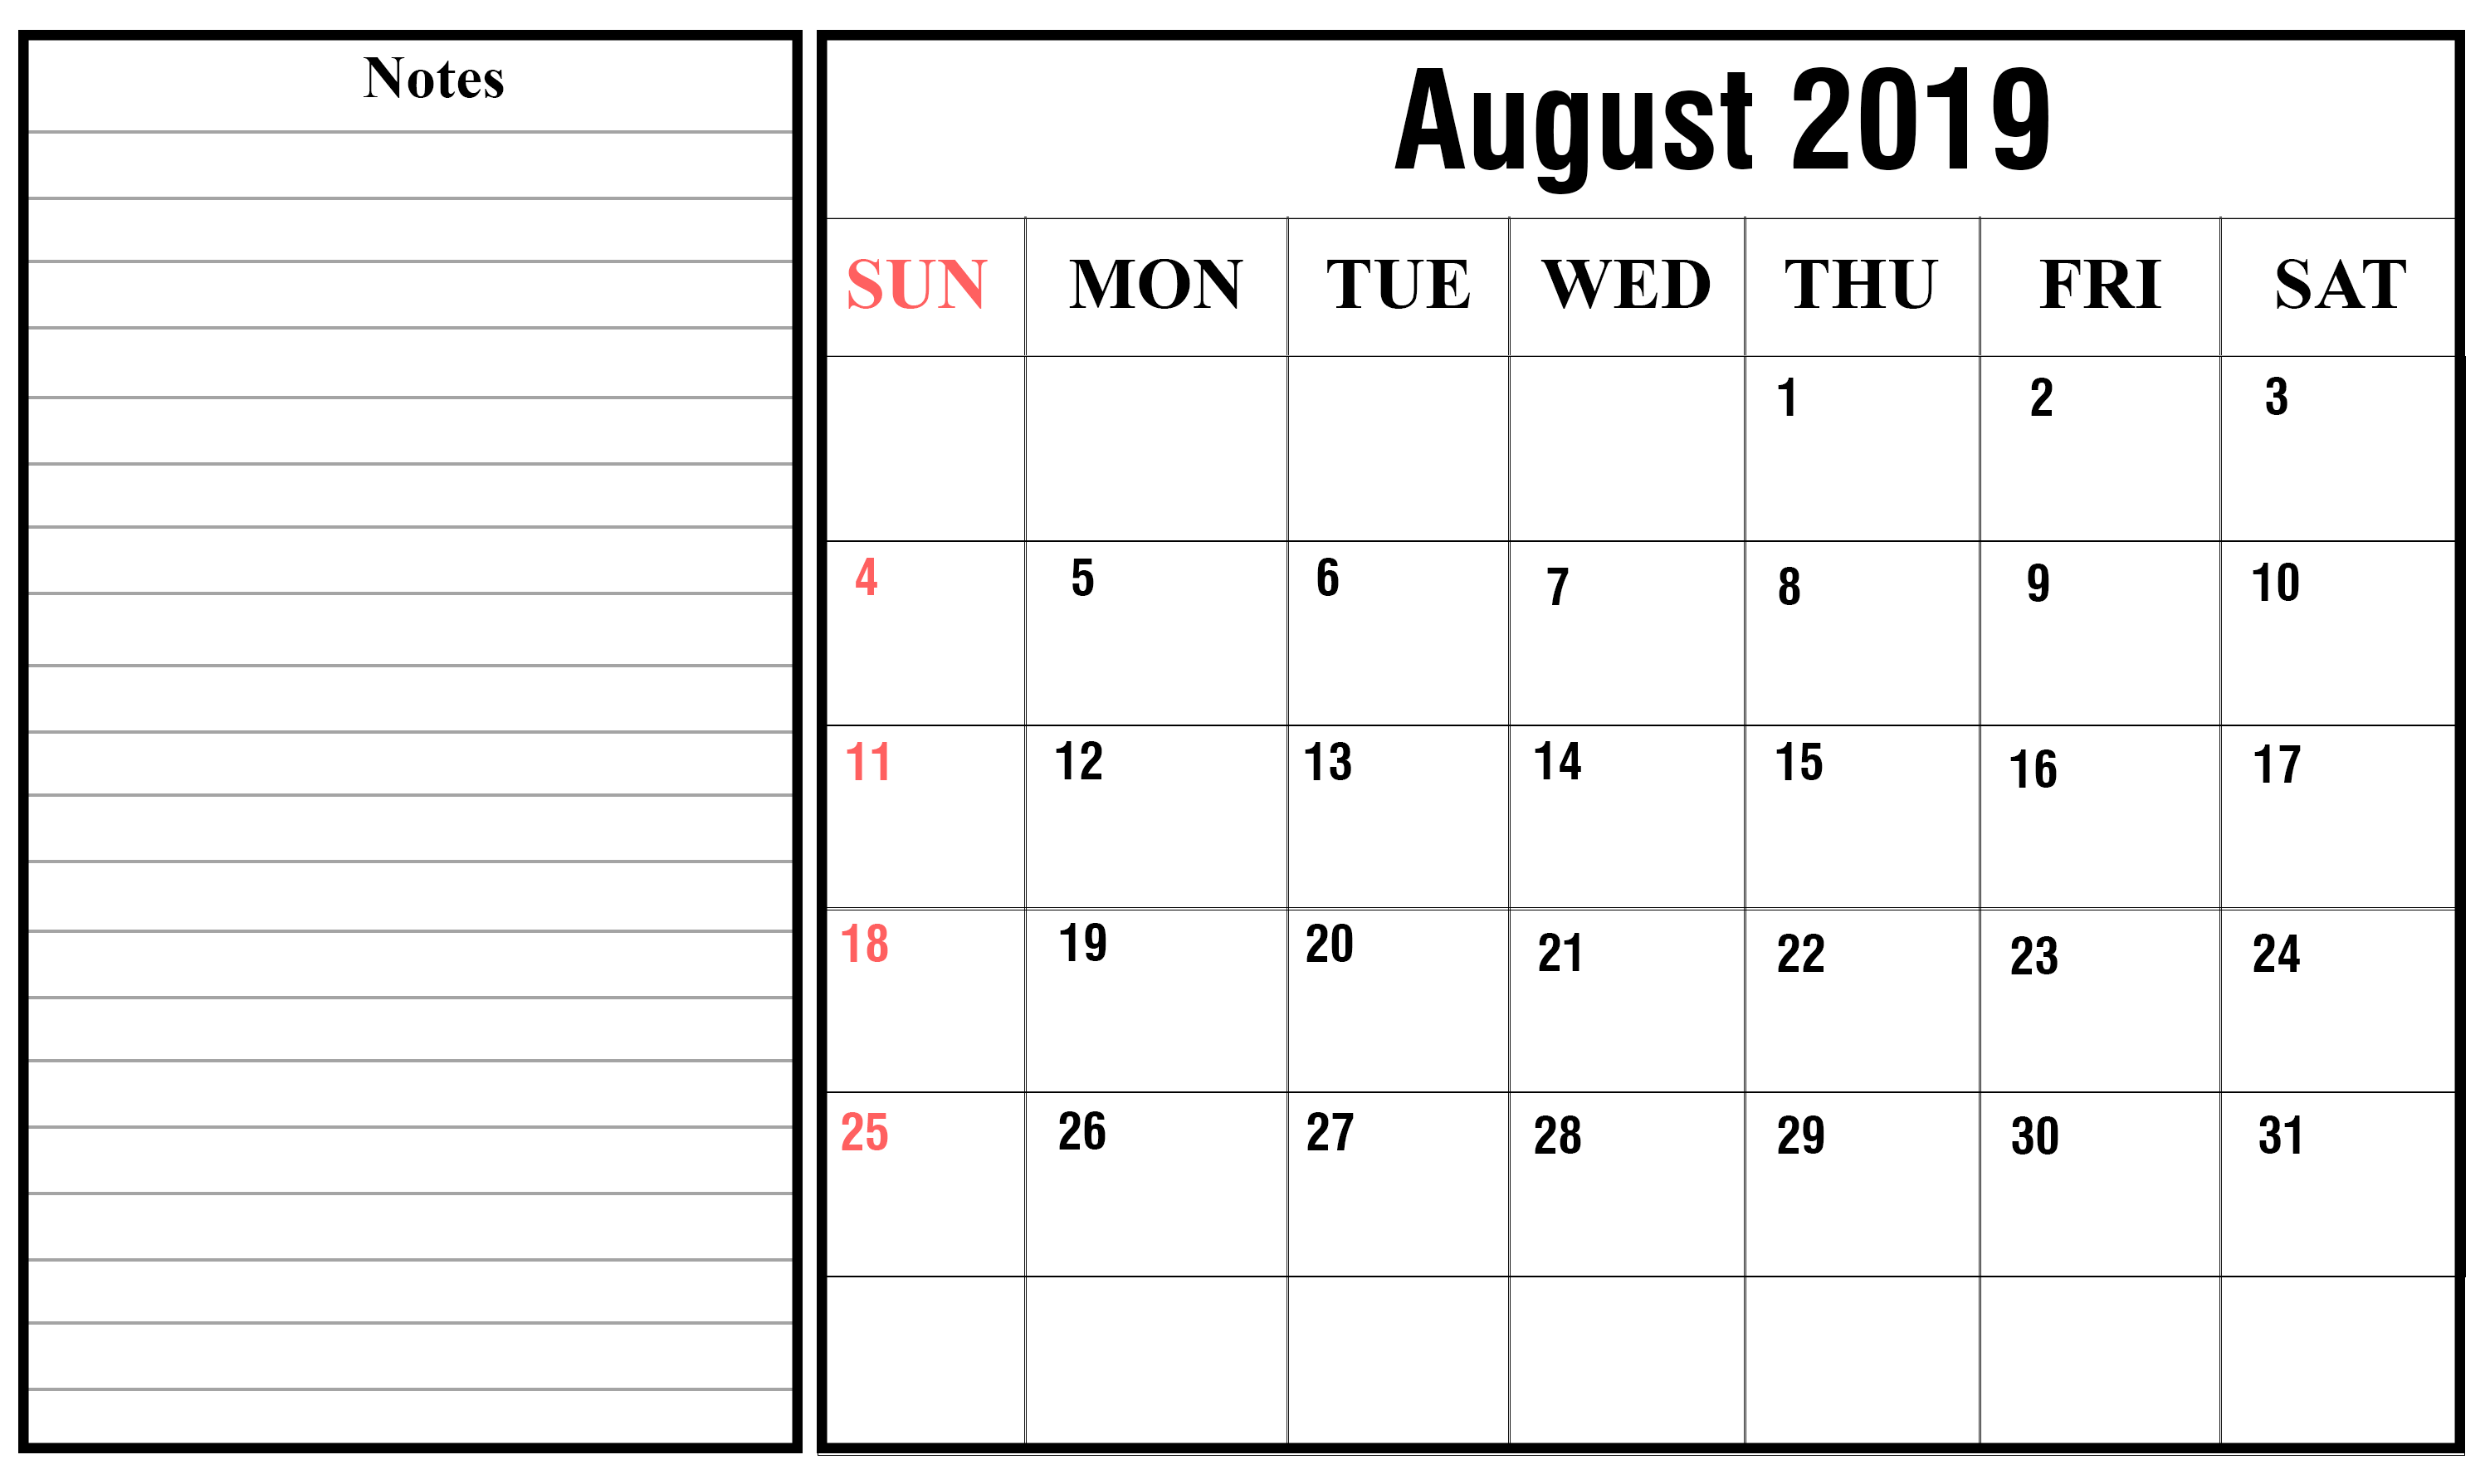 picture about Free August Calendar Printable called PDF Calendar August 2019 - No cost August 2019 Calendar